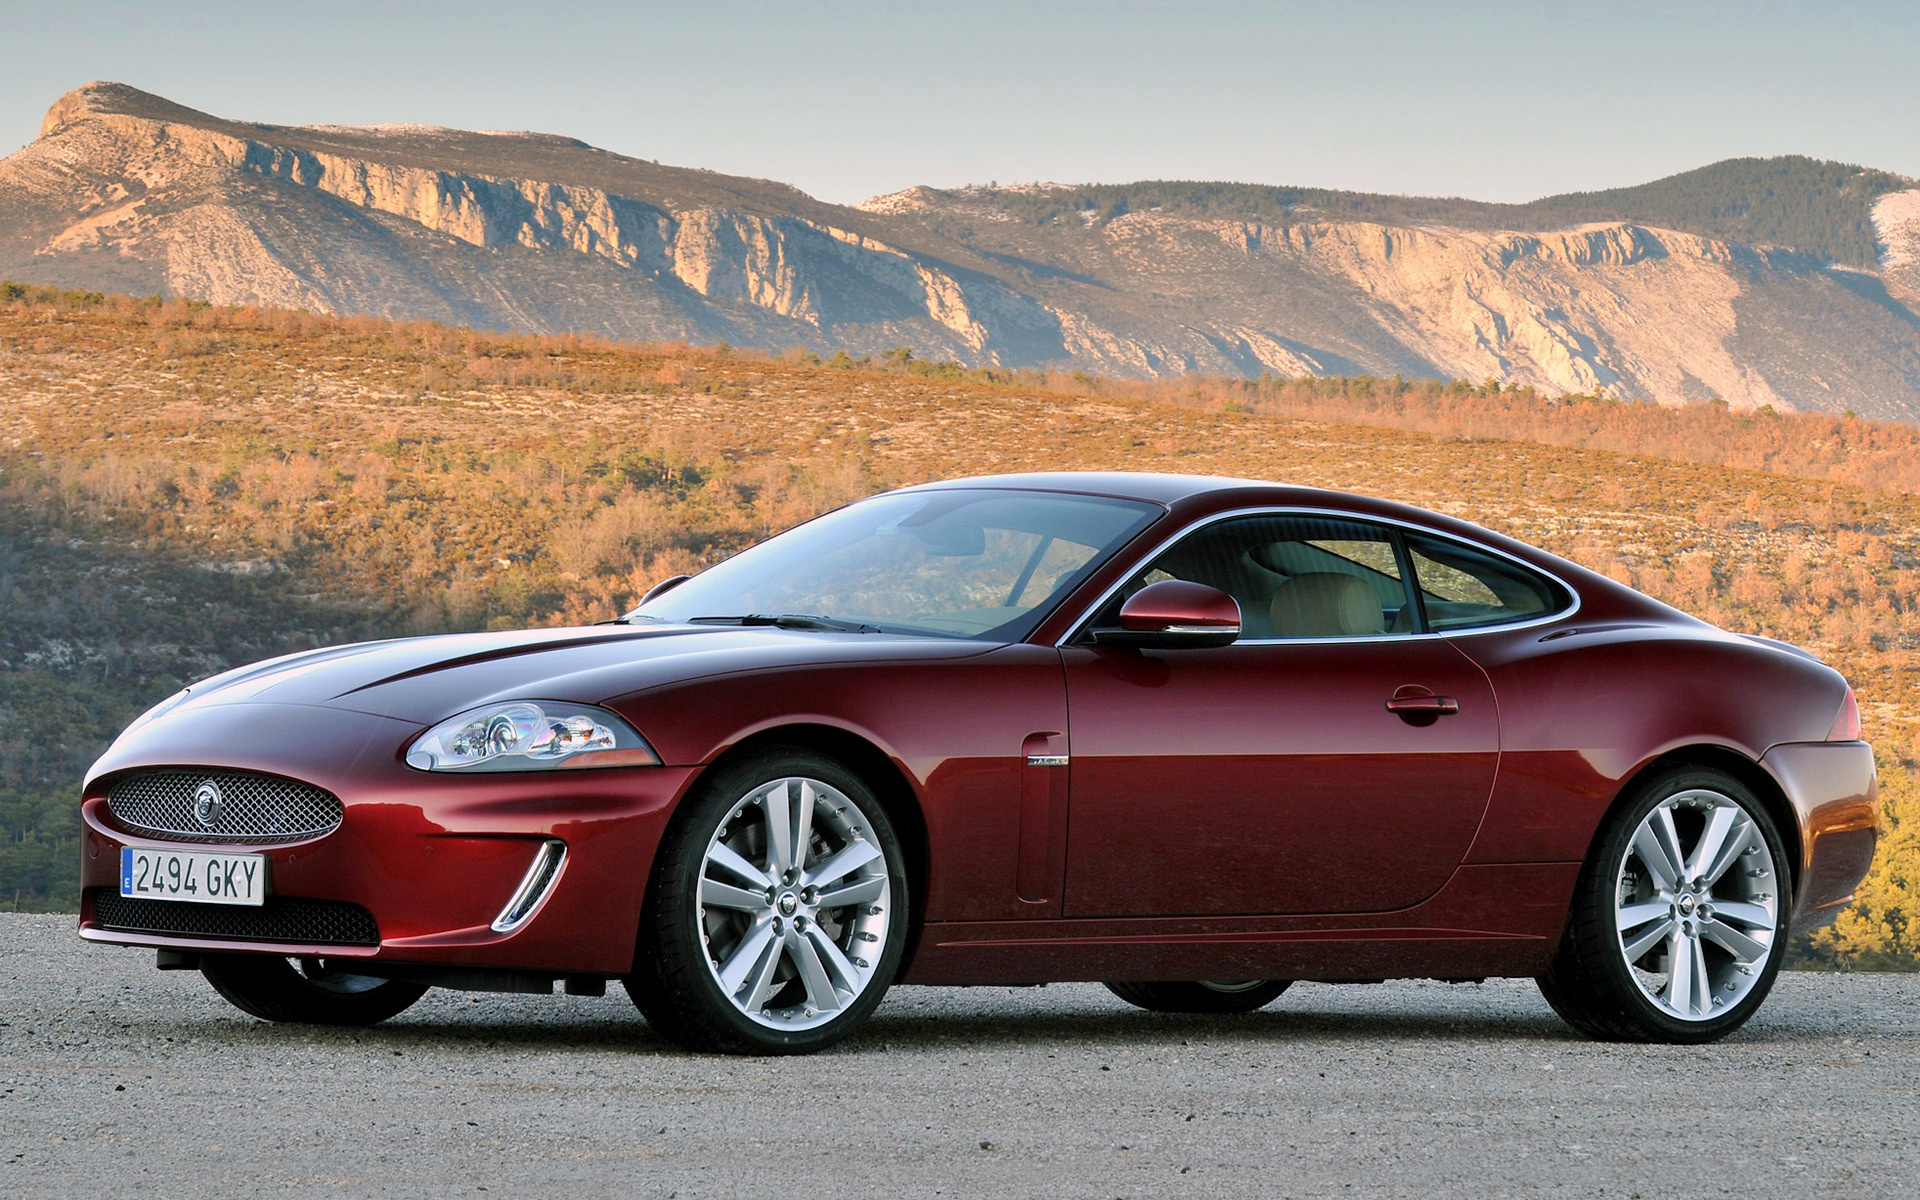 2011 Jaguar XKR-S Coupe (UK) - Wallpapers and HD Images